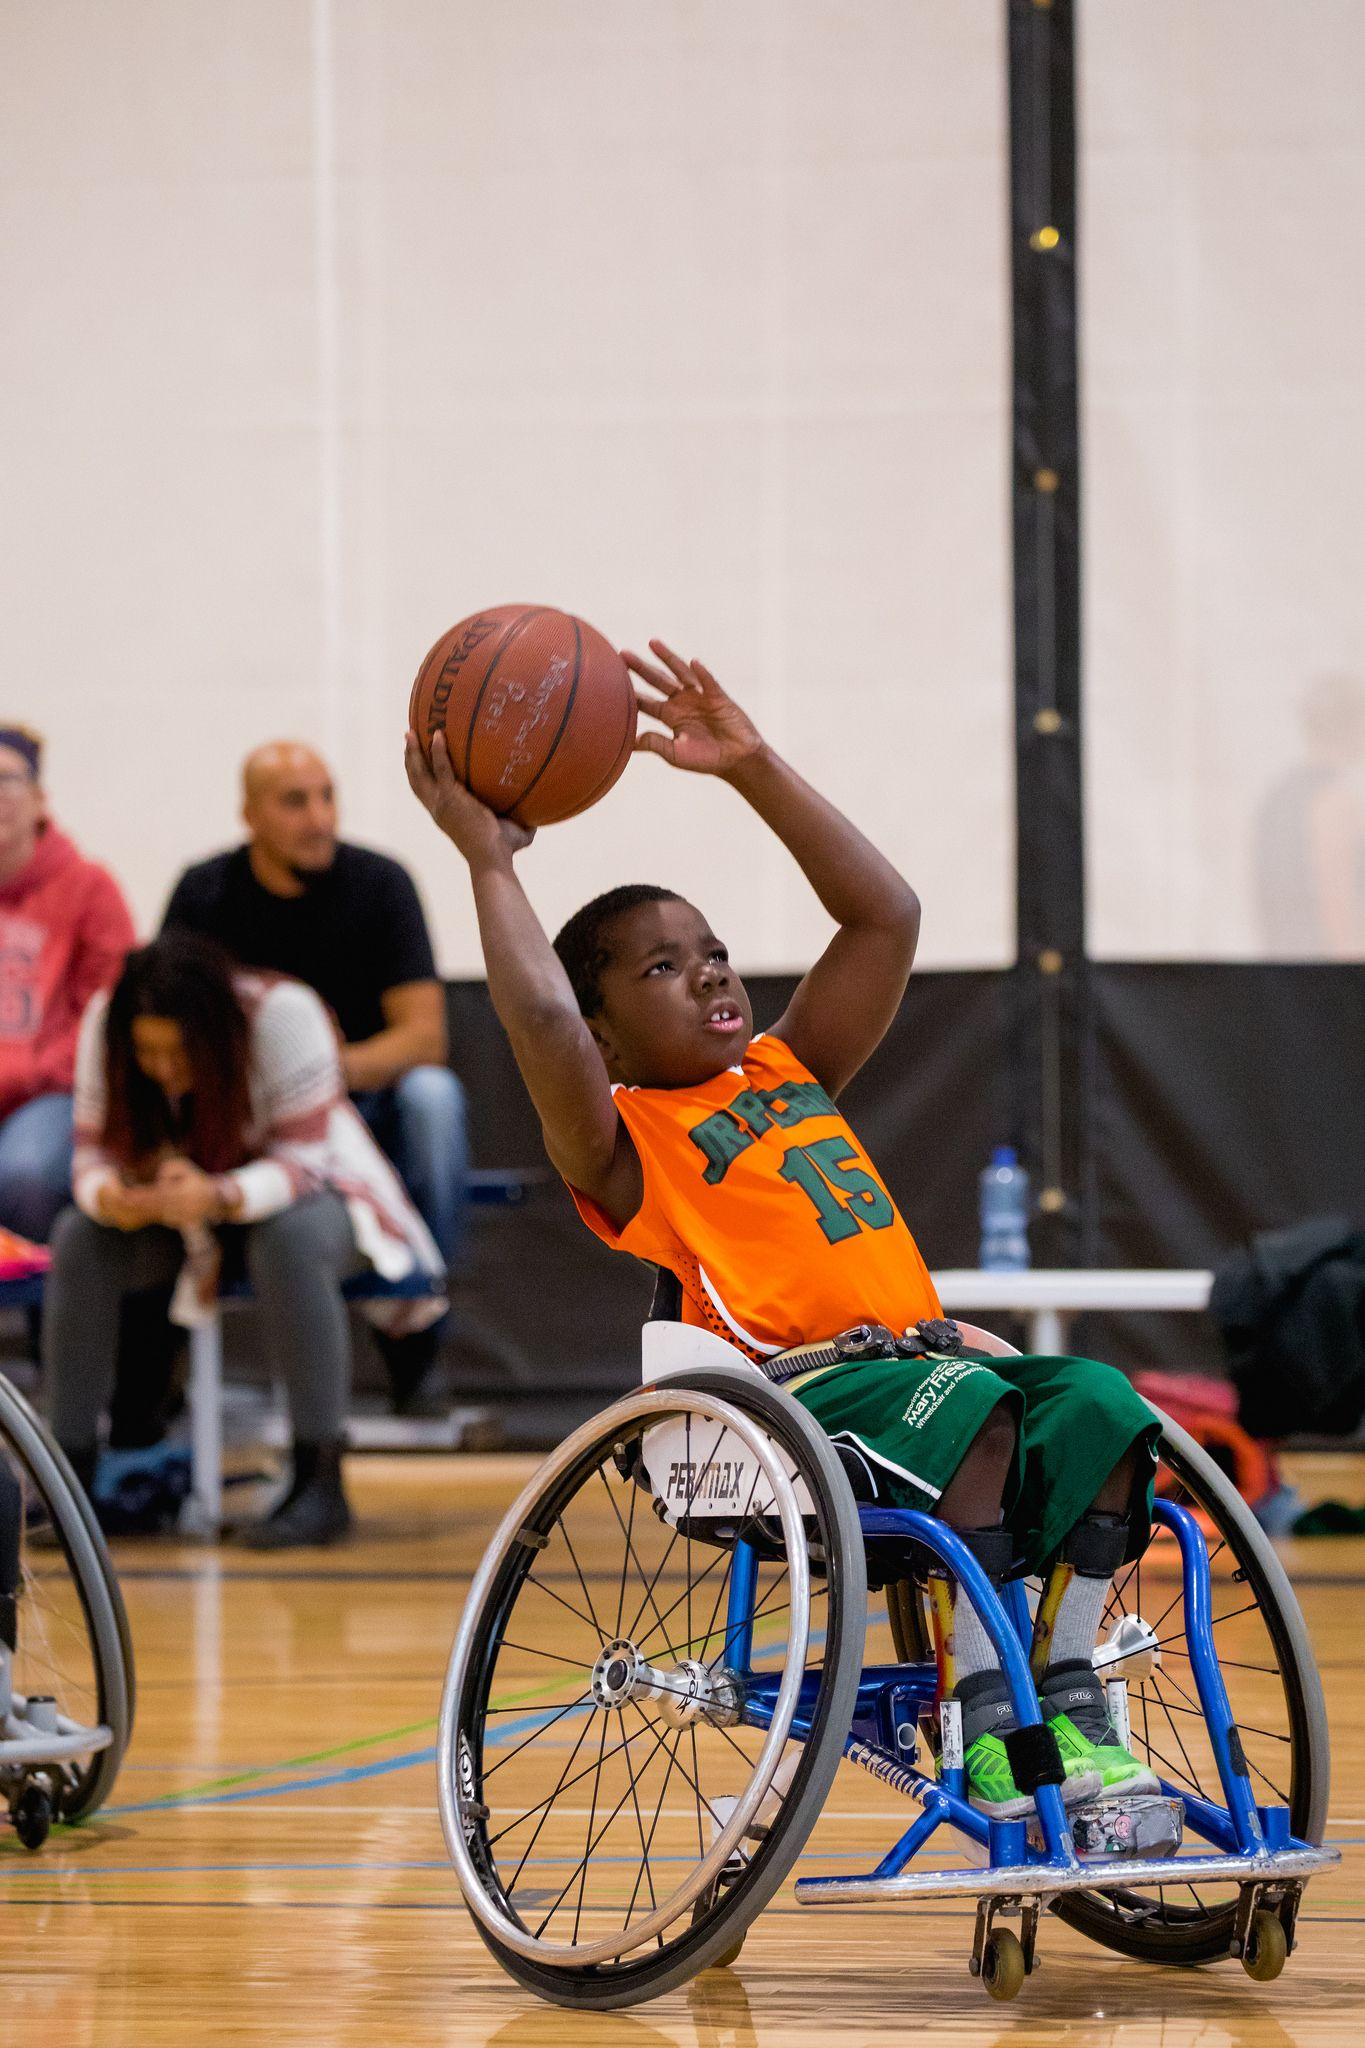 https://flic.kr/p/DcAkyC | Jr. Pacers Wheelchair Basketball Home Tournament @ Mary Free Bed YMCA - Nov 4, 2017